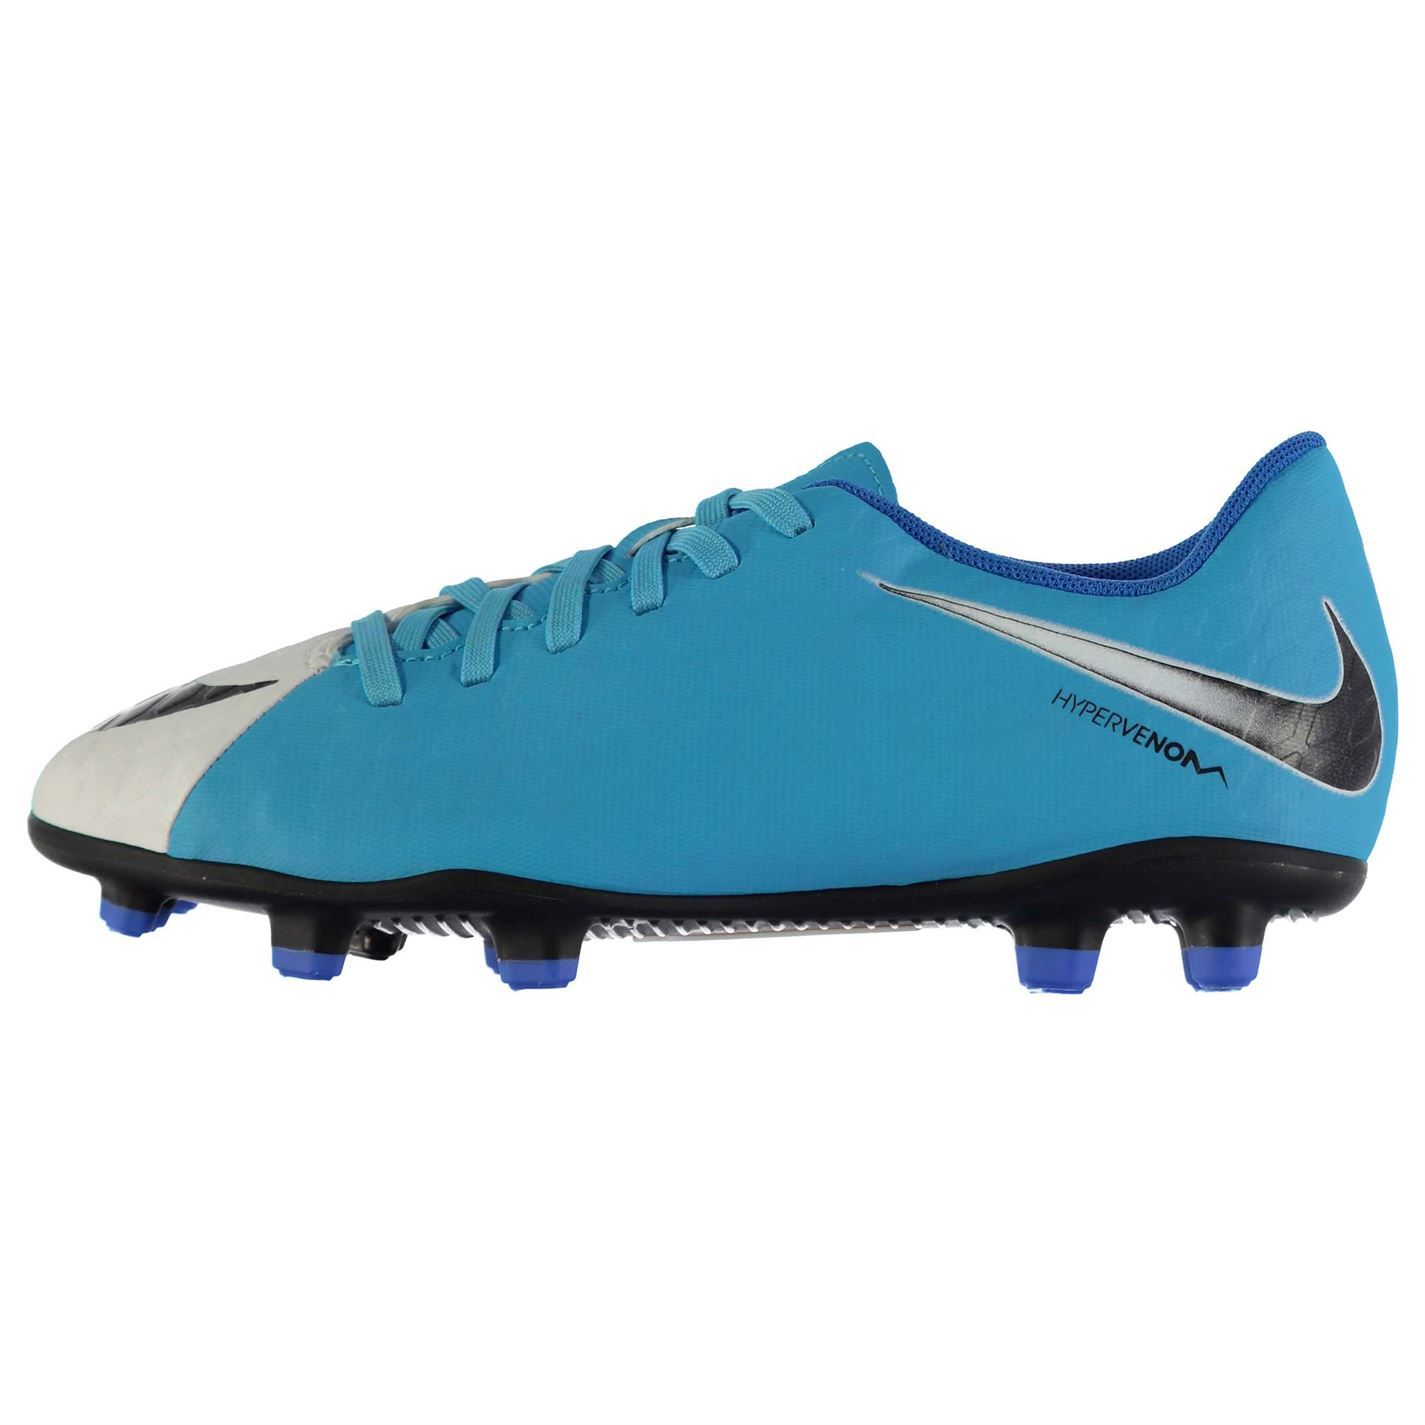 reputable site 8abab da810 ... Nike Hypervenom 3 Phade Firm Ground Football Boots Juniors Wht Blue  Soccer Shoes ...